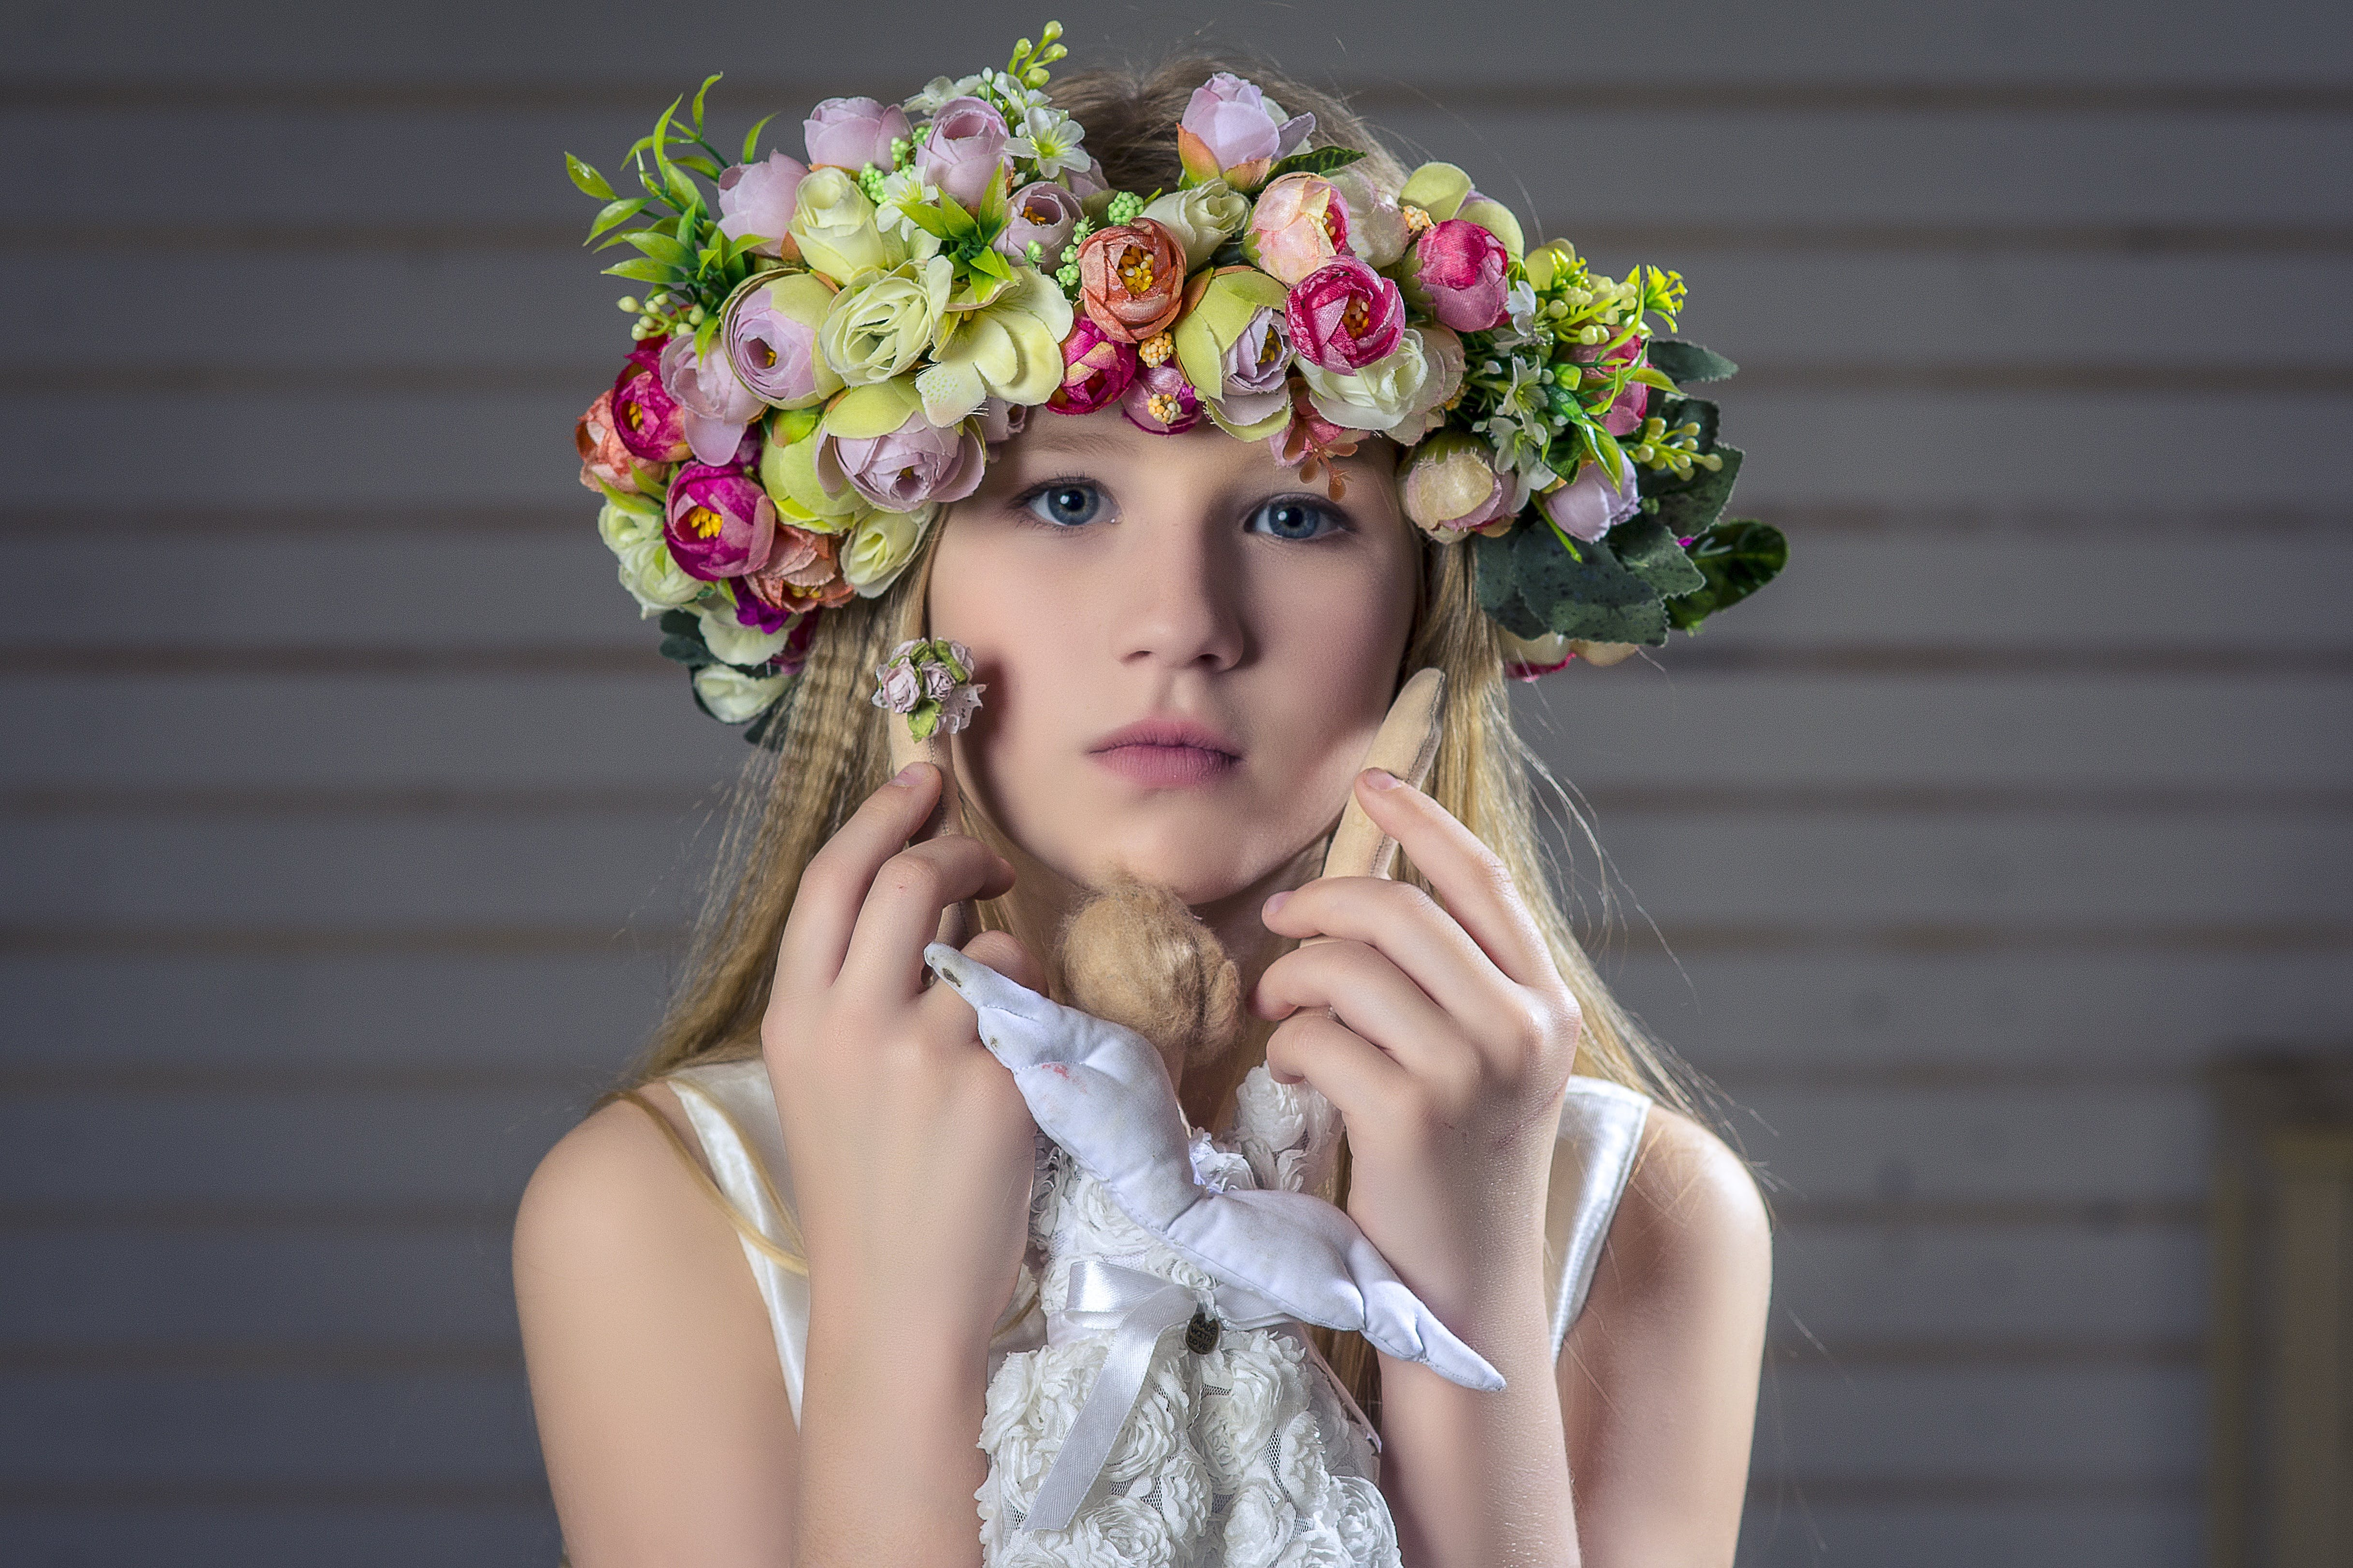 Girl Wearing Floral Headband